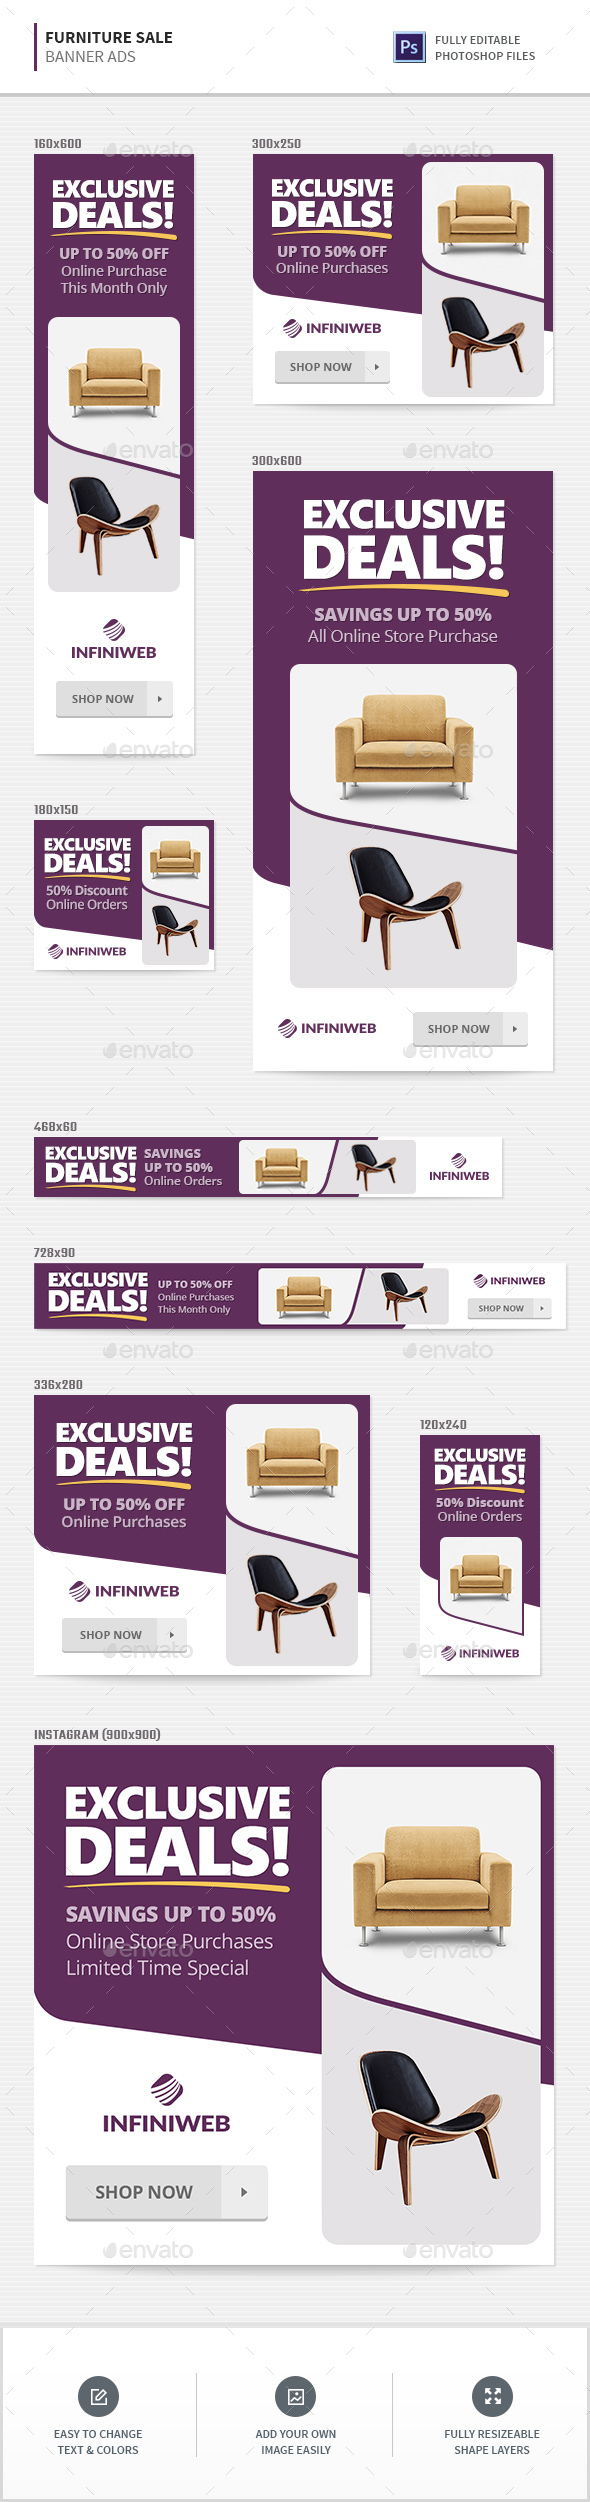 Furniture Sale Banners - Banners & Ads Web Elements